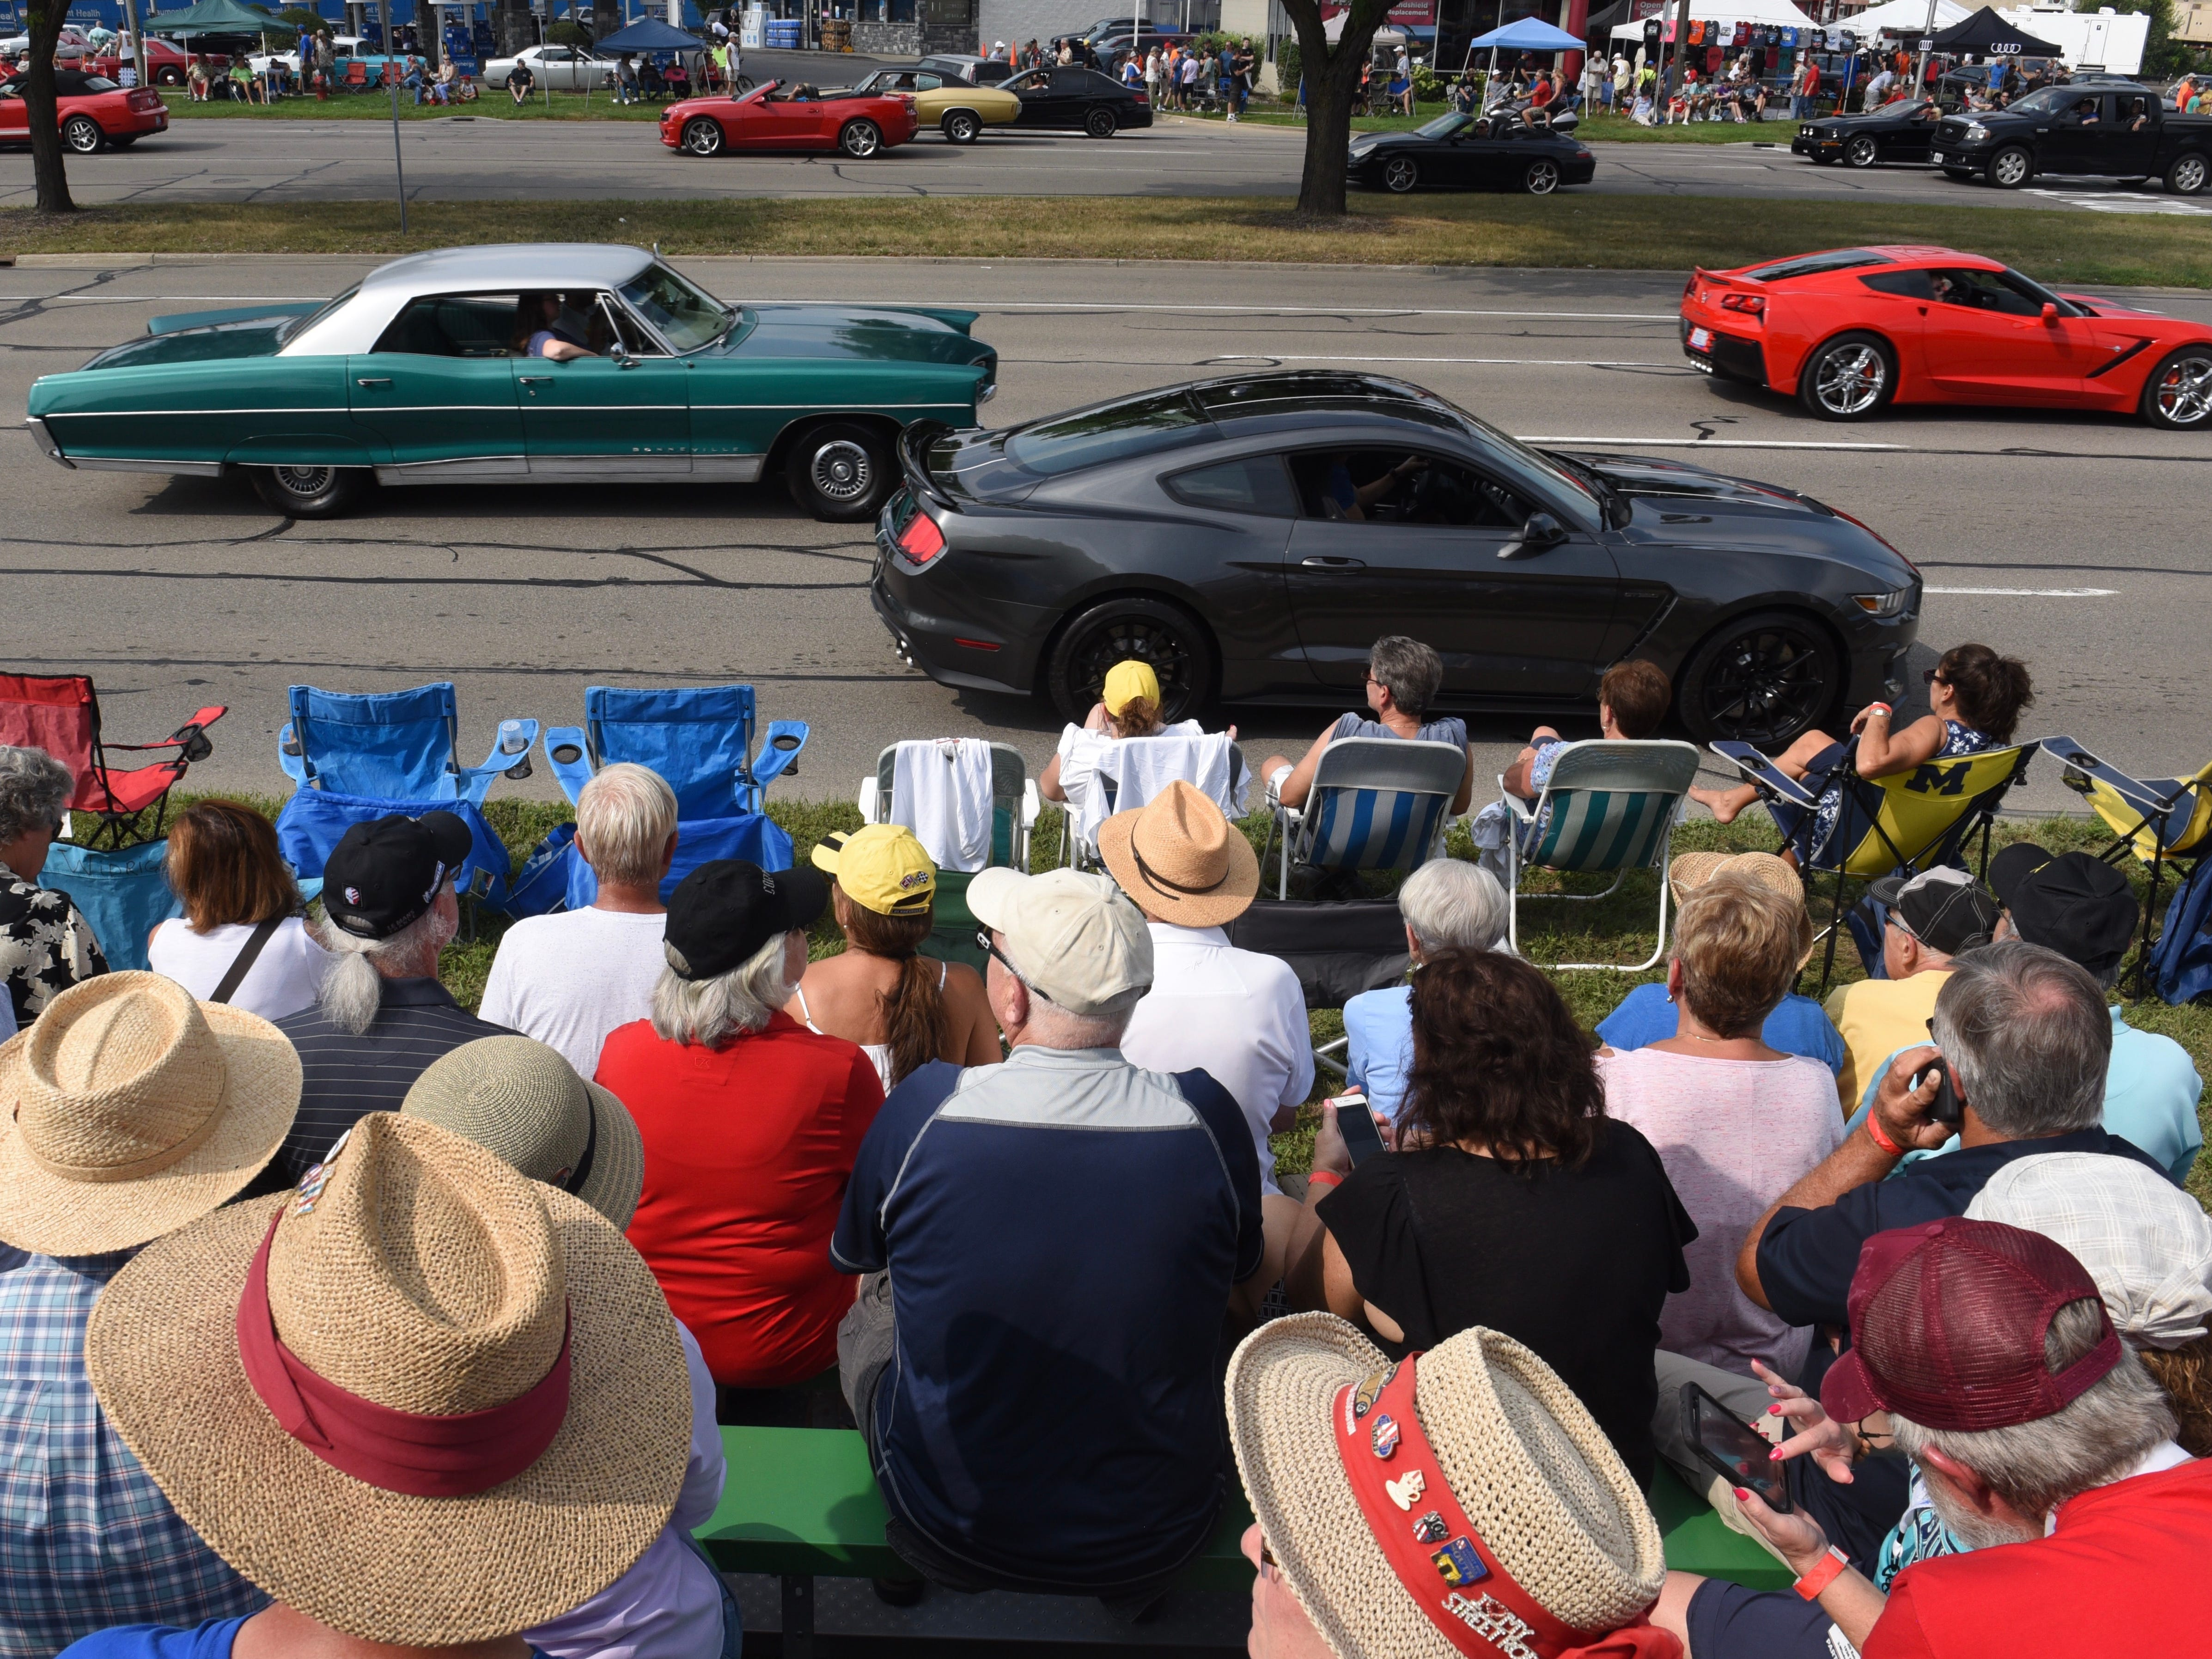 Spectators fill a grandstand for the Woodward Dream Cruise in Royal Oak.